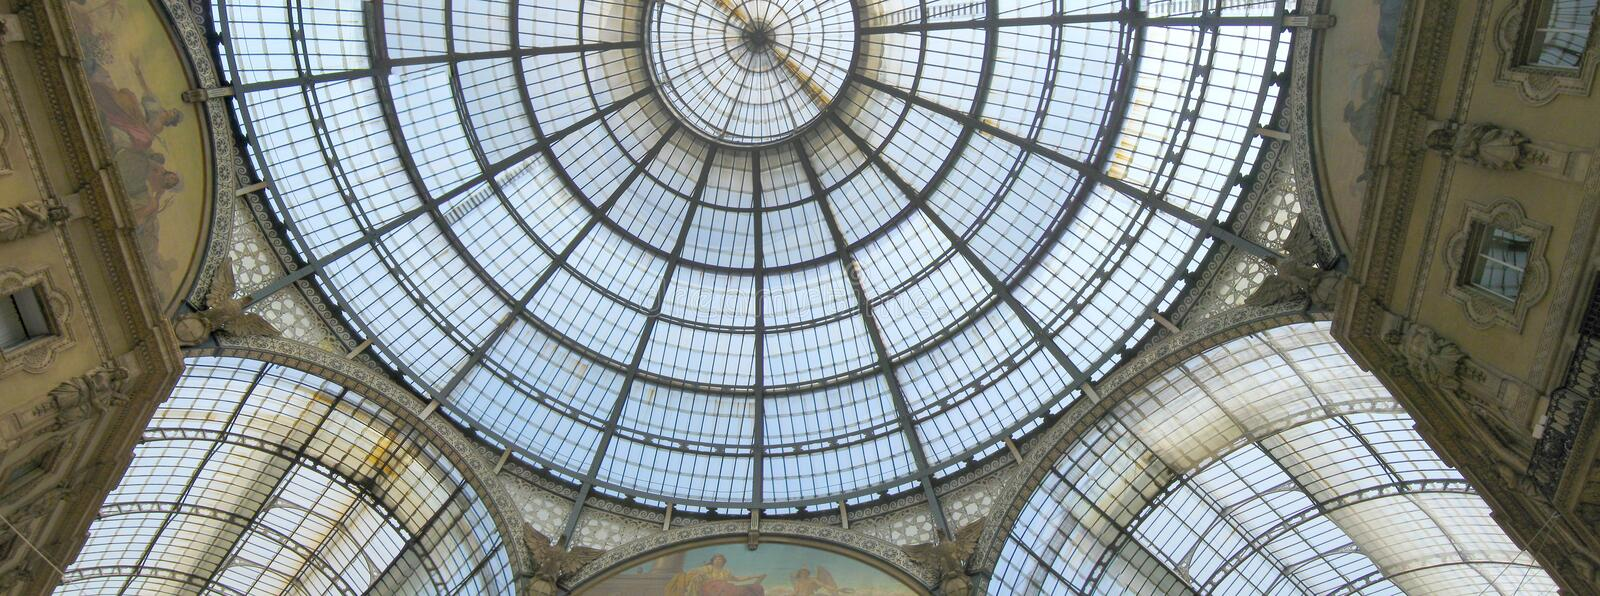 Download Milan architecture stock image. Image of vittorio, ceiling - 25579935